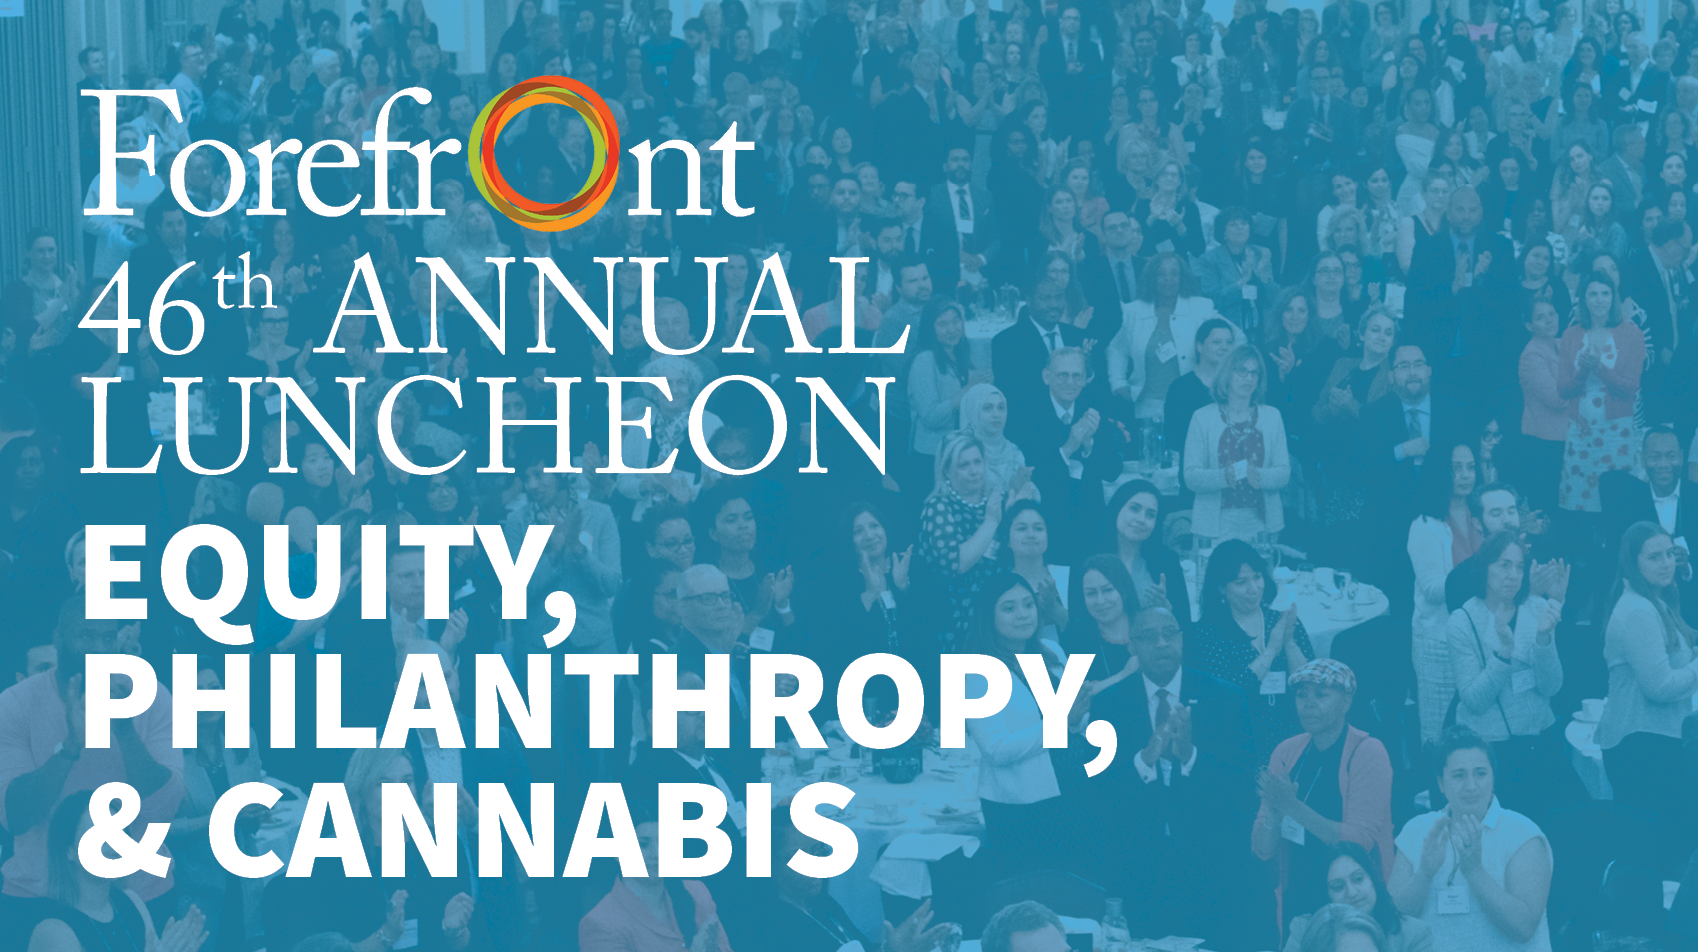 Forefront's 46th Annual Luncheon